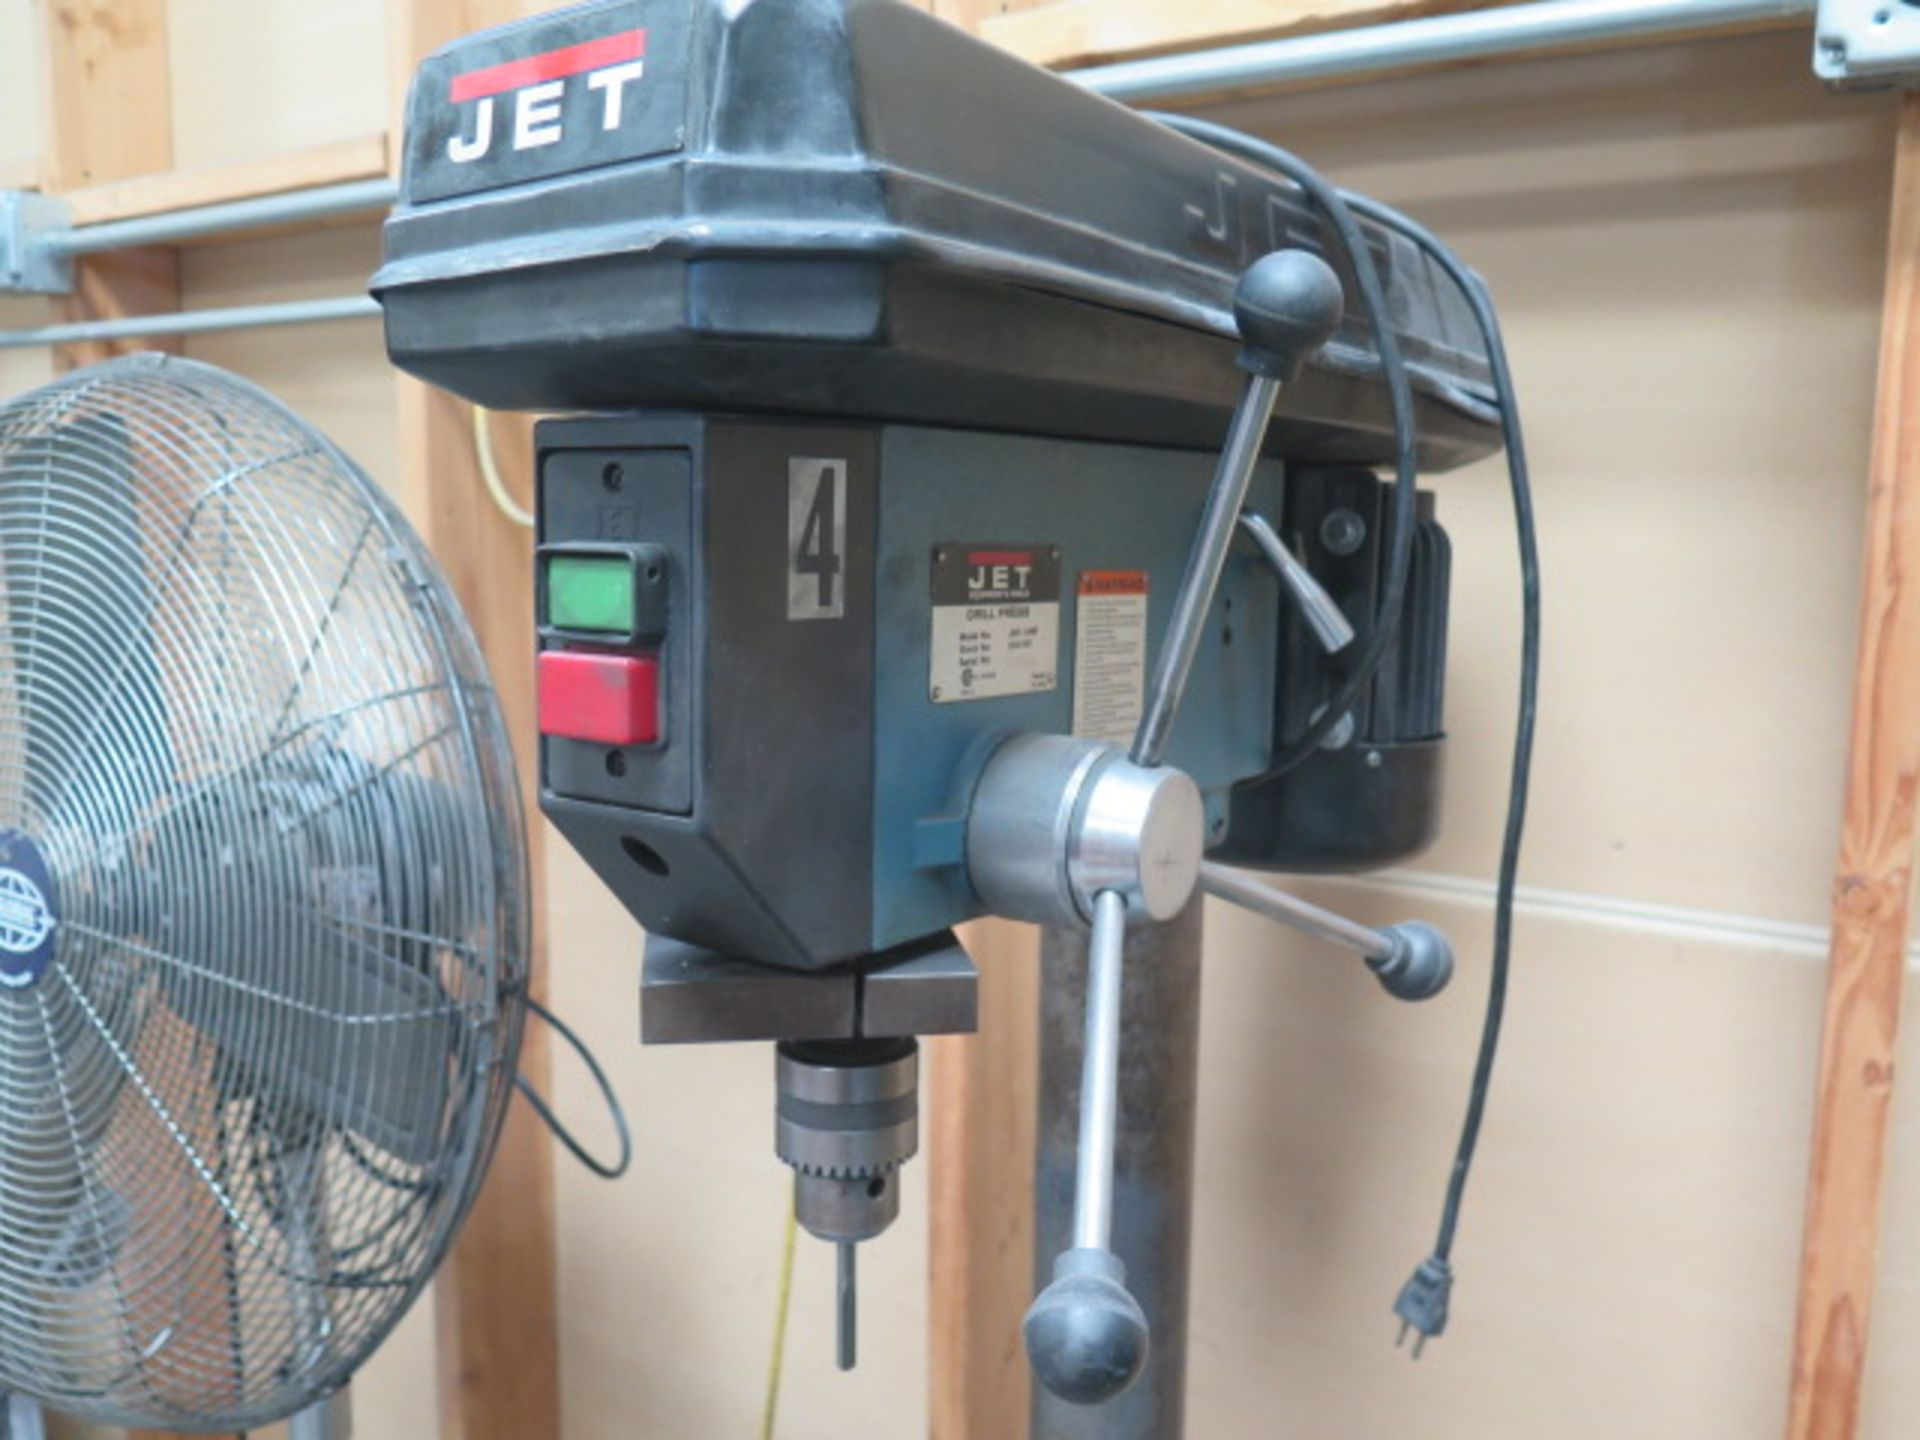 Jet Pedestal Drill Press (SOLD AS-IS - NO WARRANTY) - Image 2 of 7